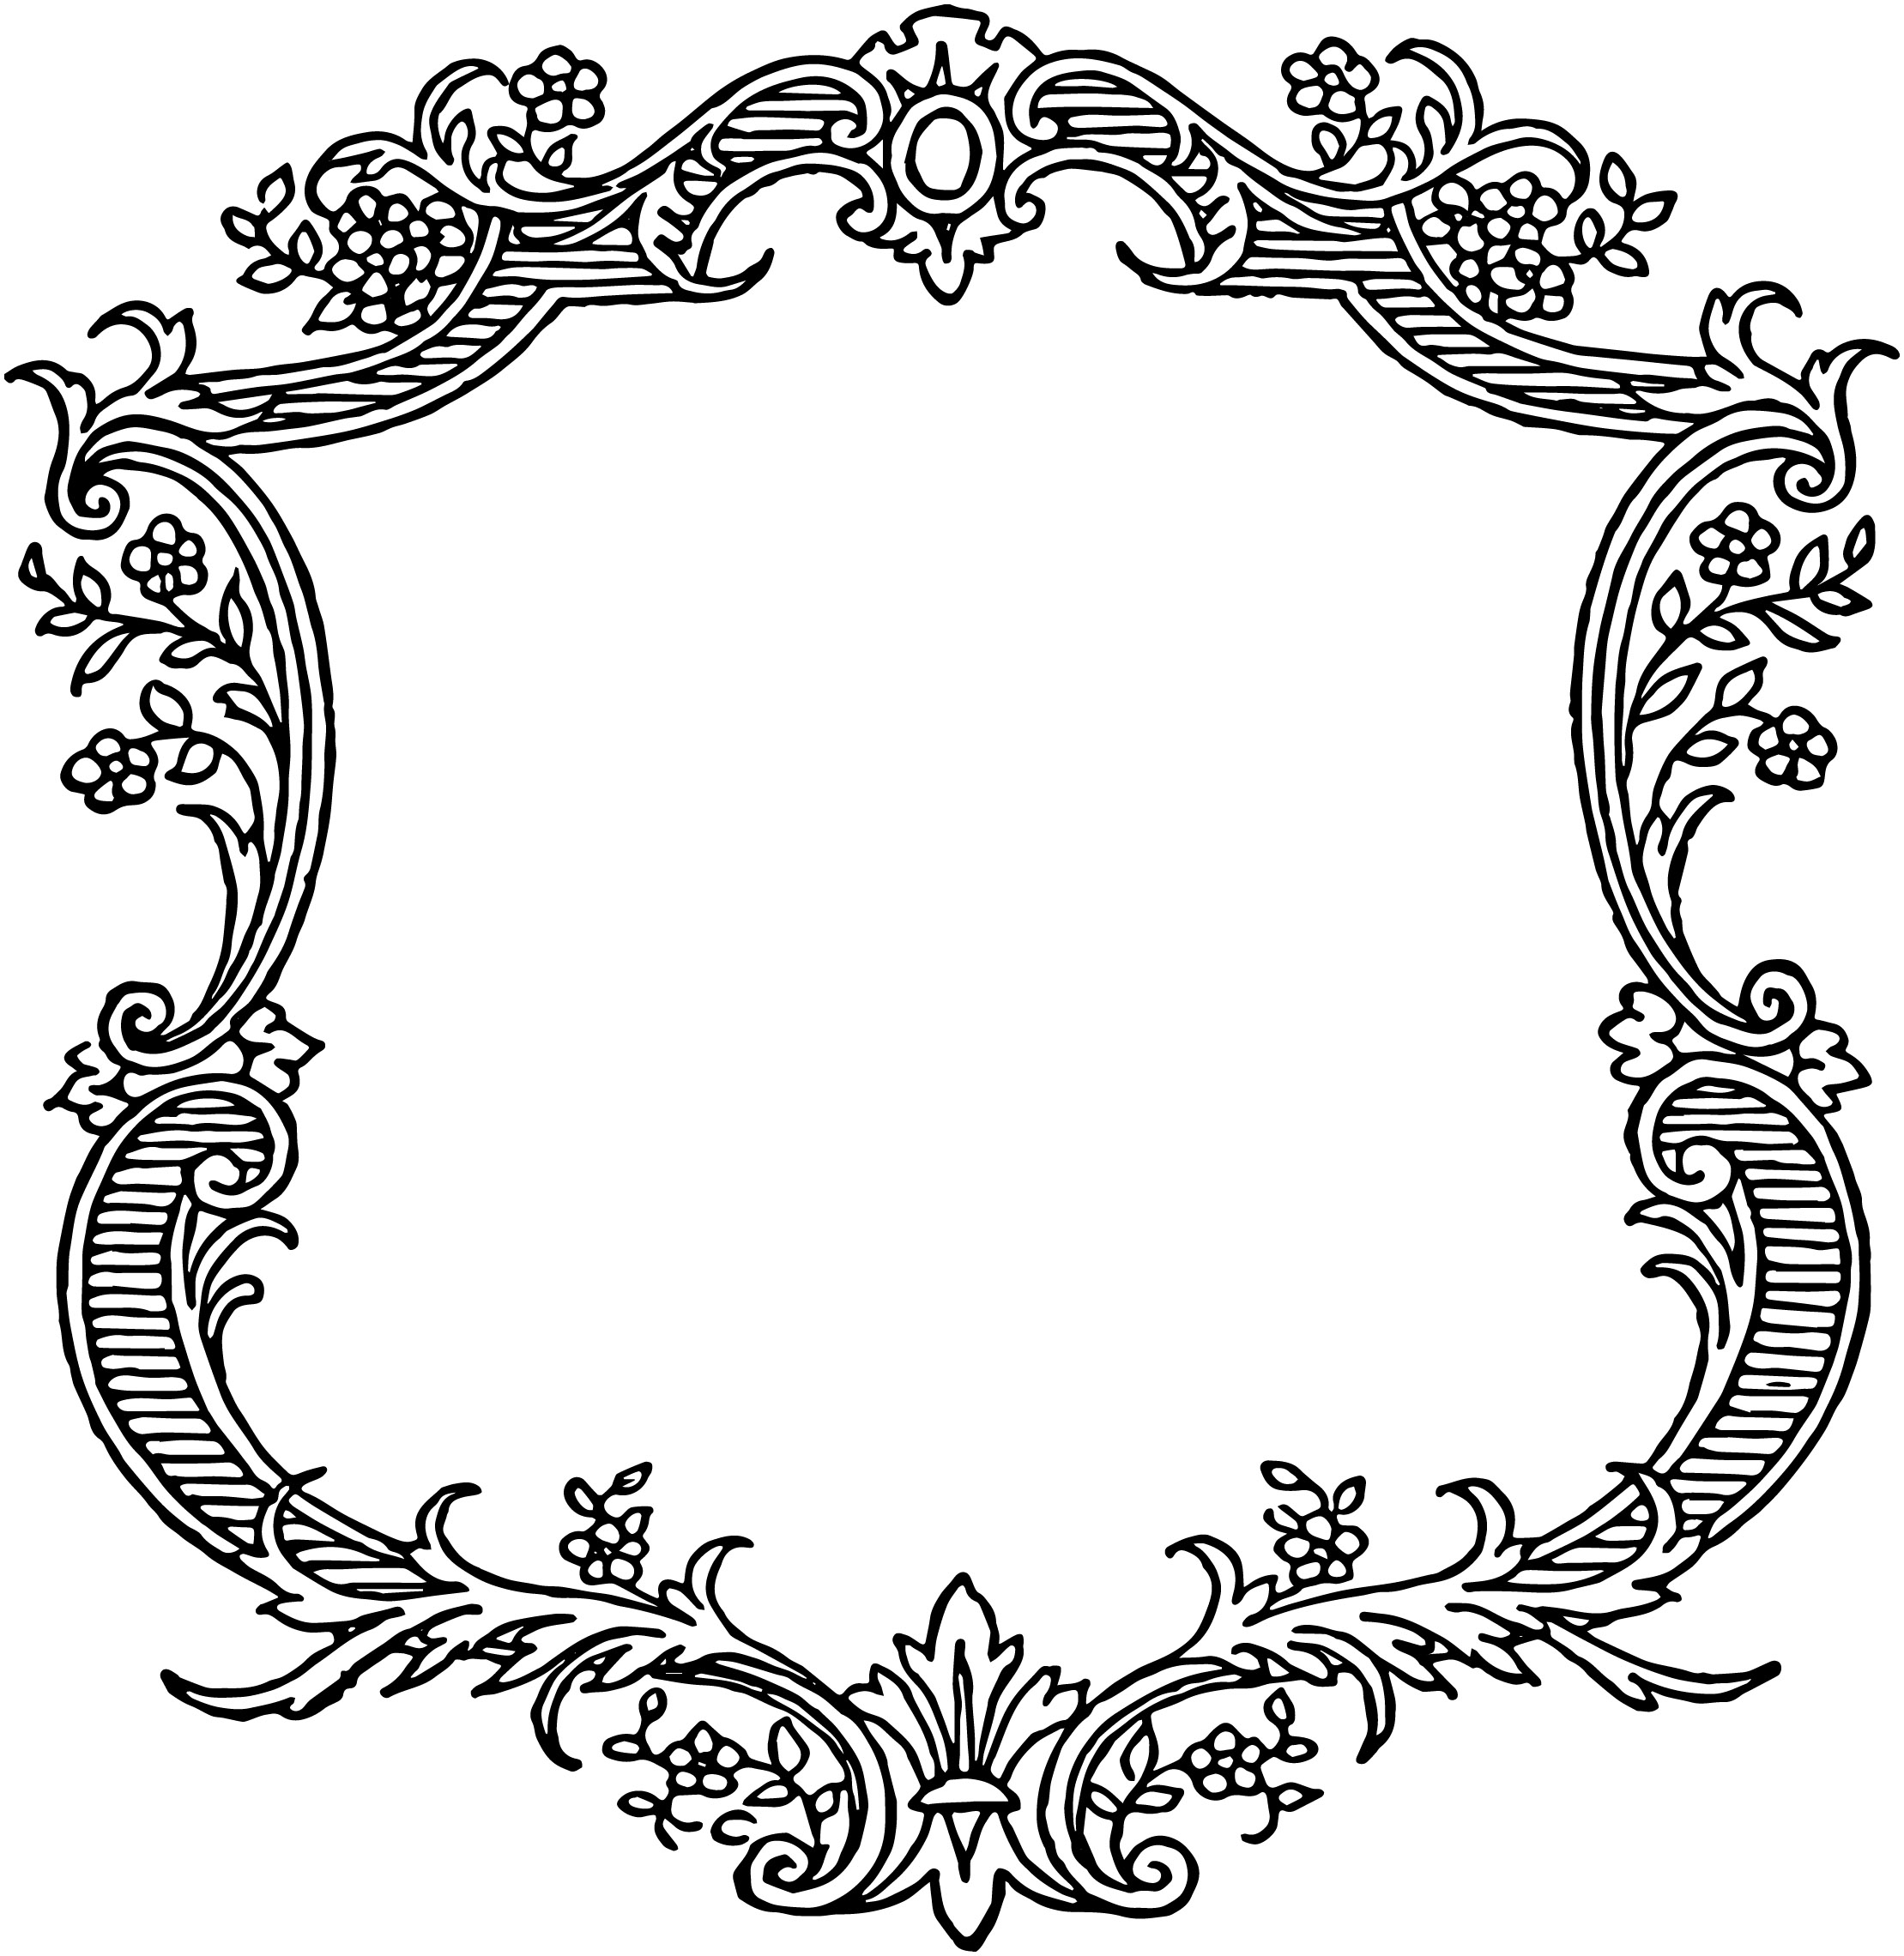 Classics clipart victorian scroll Oh Frame Floral Free ClipArt